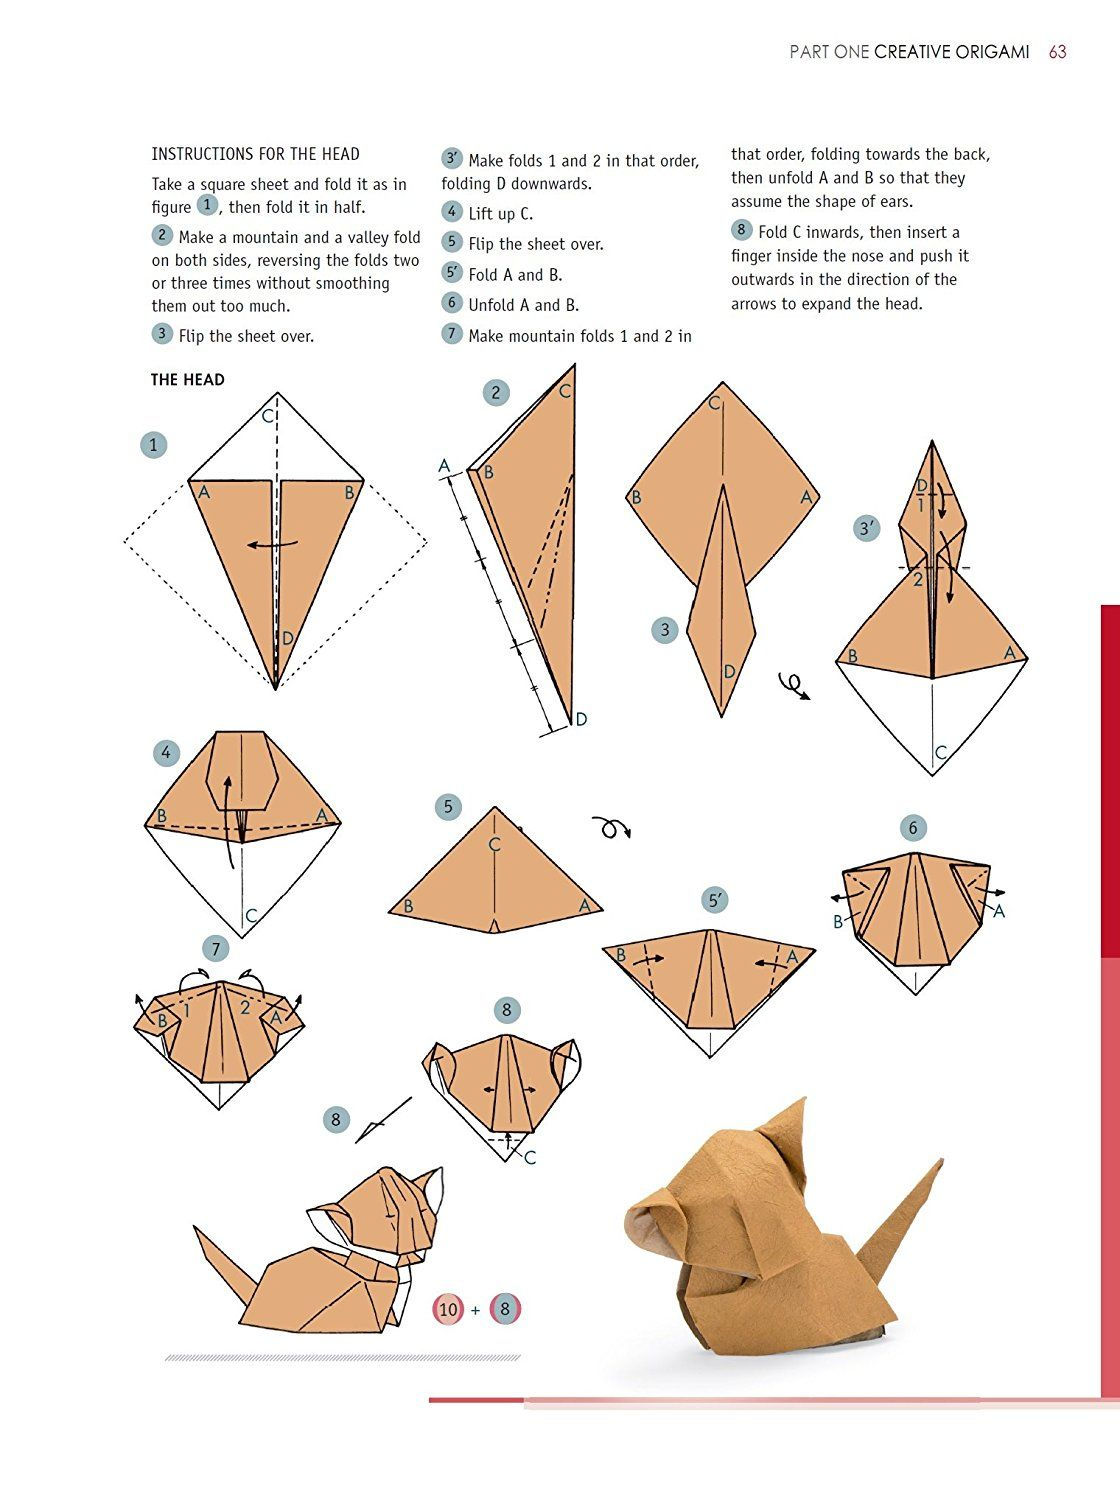 Marvelous Labeled Scorpion Diagram Diagrams Showing How Cover Page The Origami Wiring Digital Resources Timewpwclawcorpcom